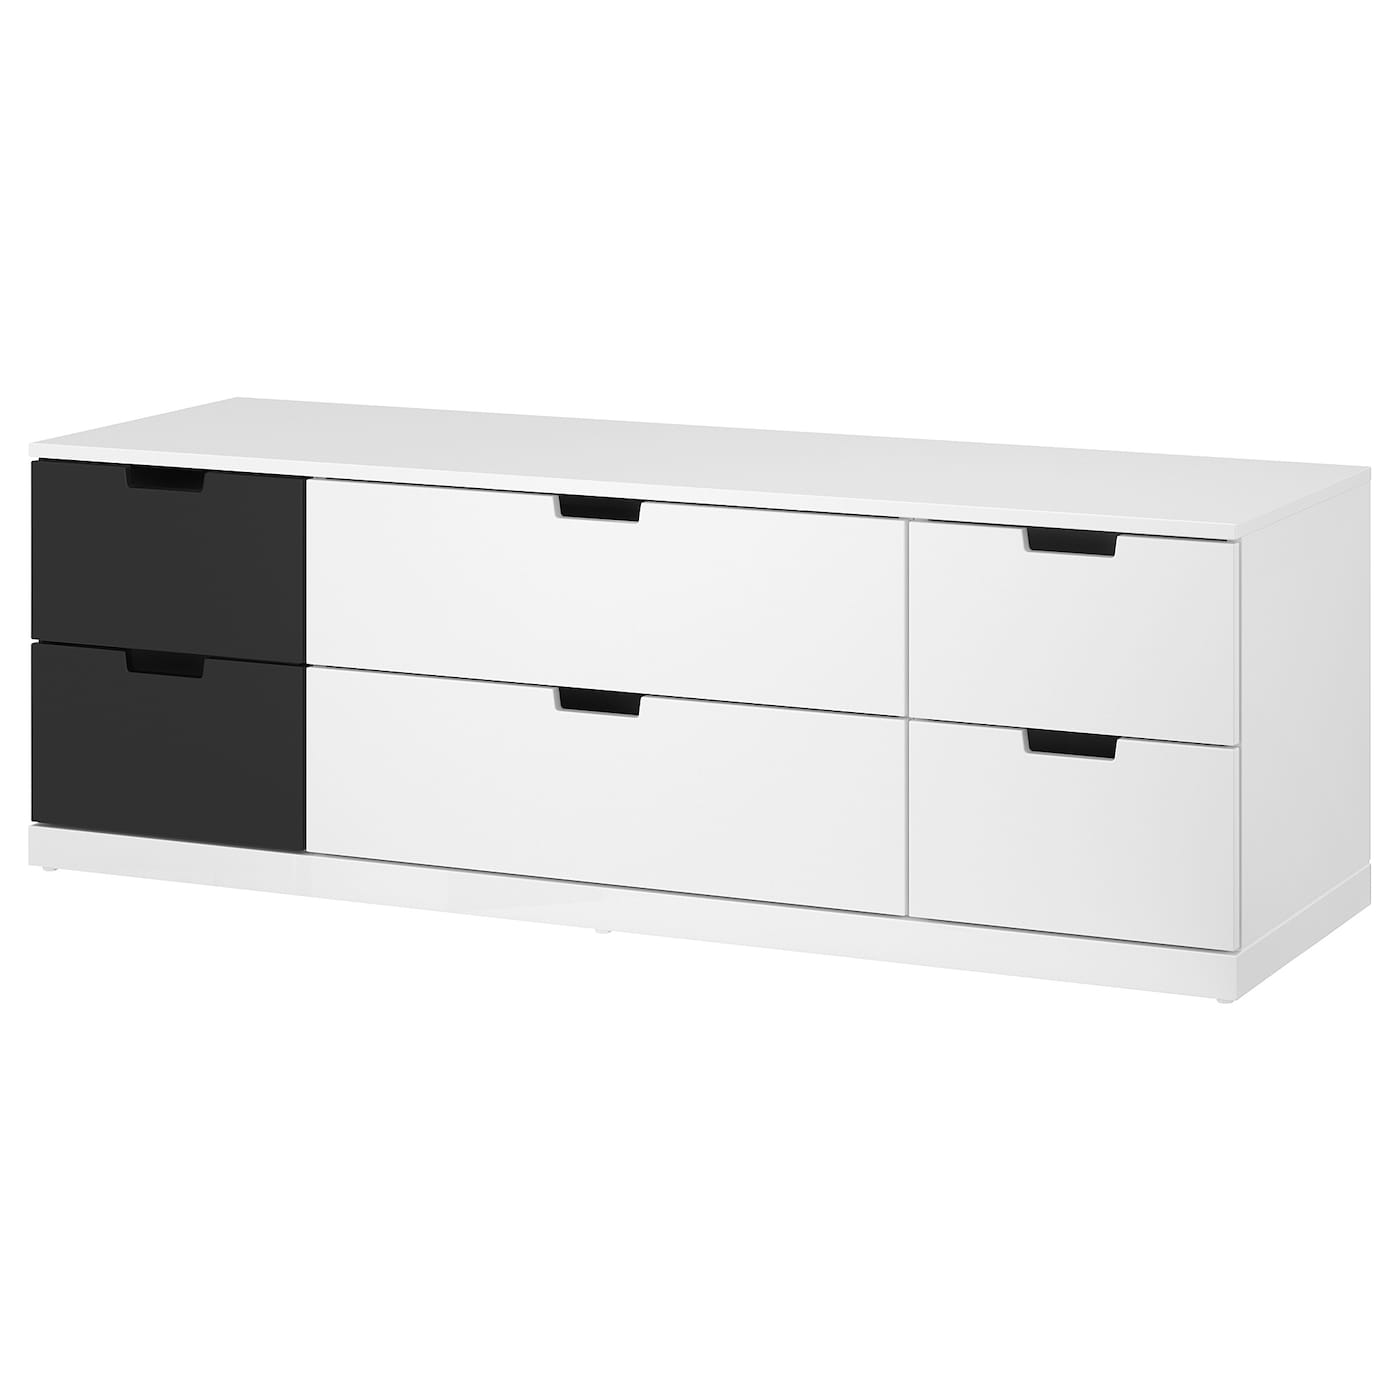 nordli commode 6 tiroirs blanc anthracite 160x54 cm ikea. Black Bedroom Furniture Sets. Home Design Ideas